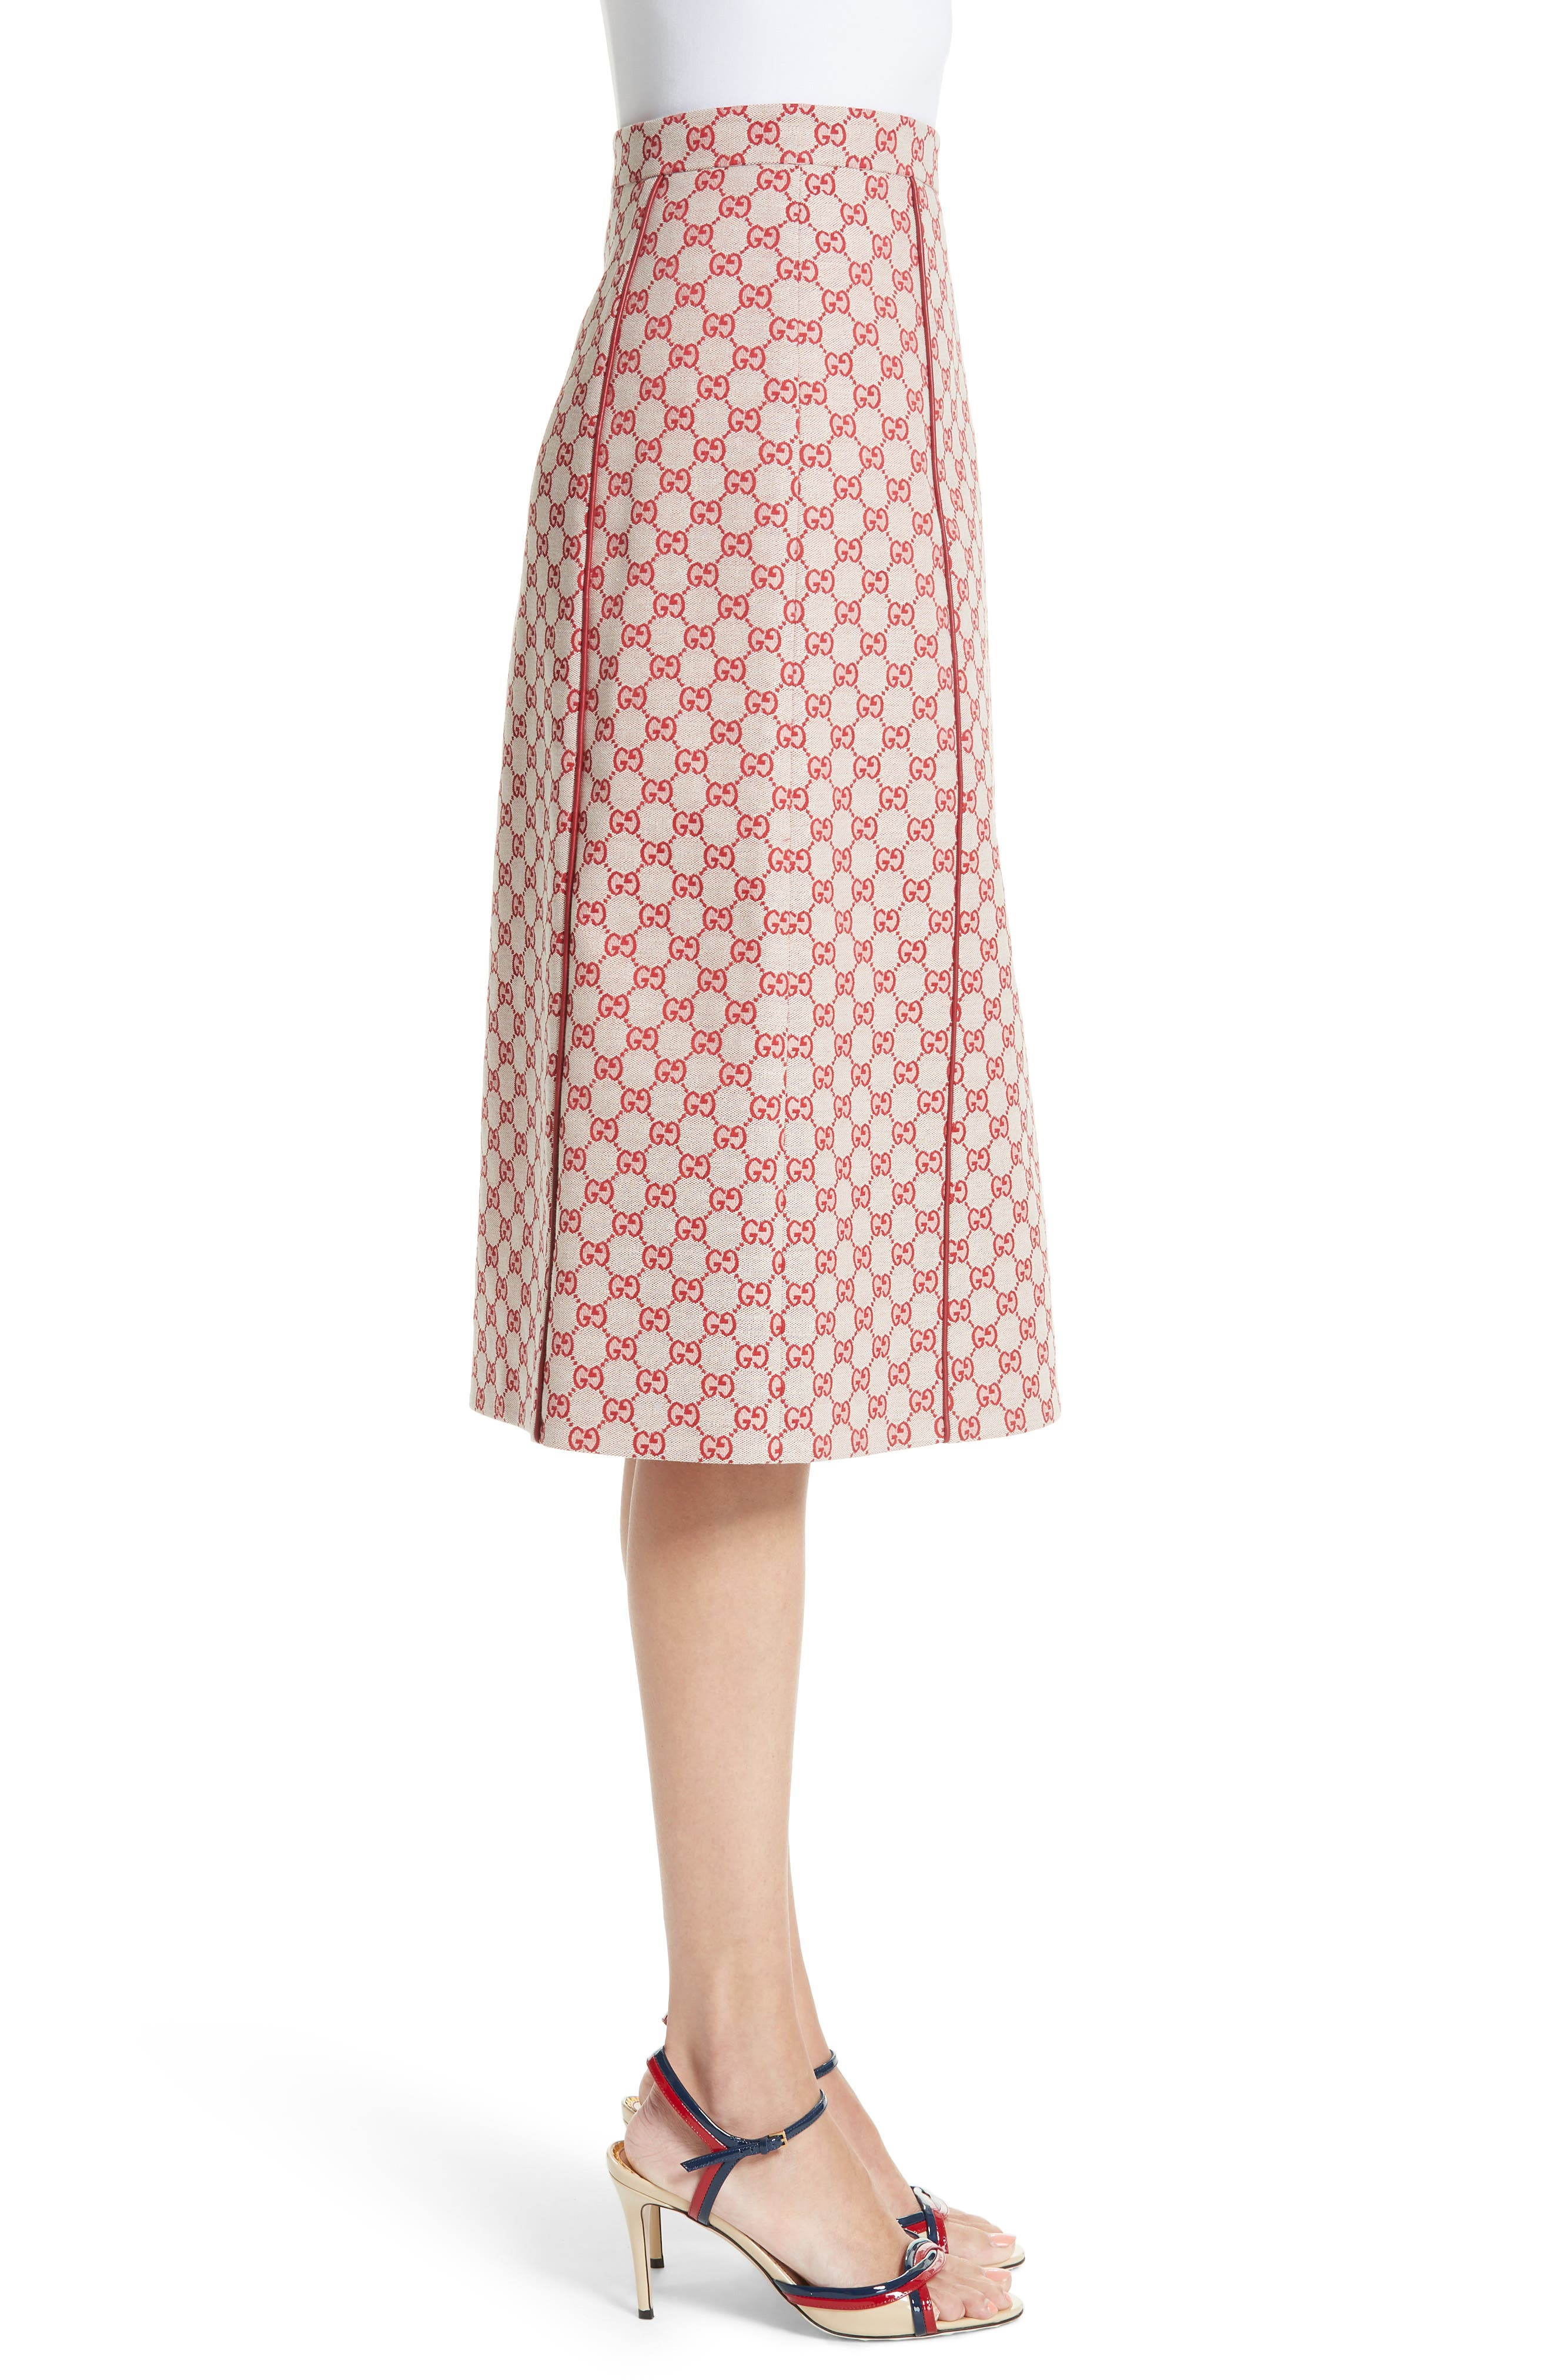 GG Print Canvas A-Line Skirt,                             Alternate thumbnail 3, color,                             Gardenia/ Hibiscus Red